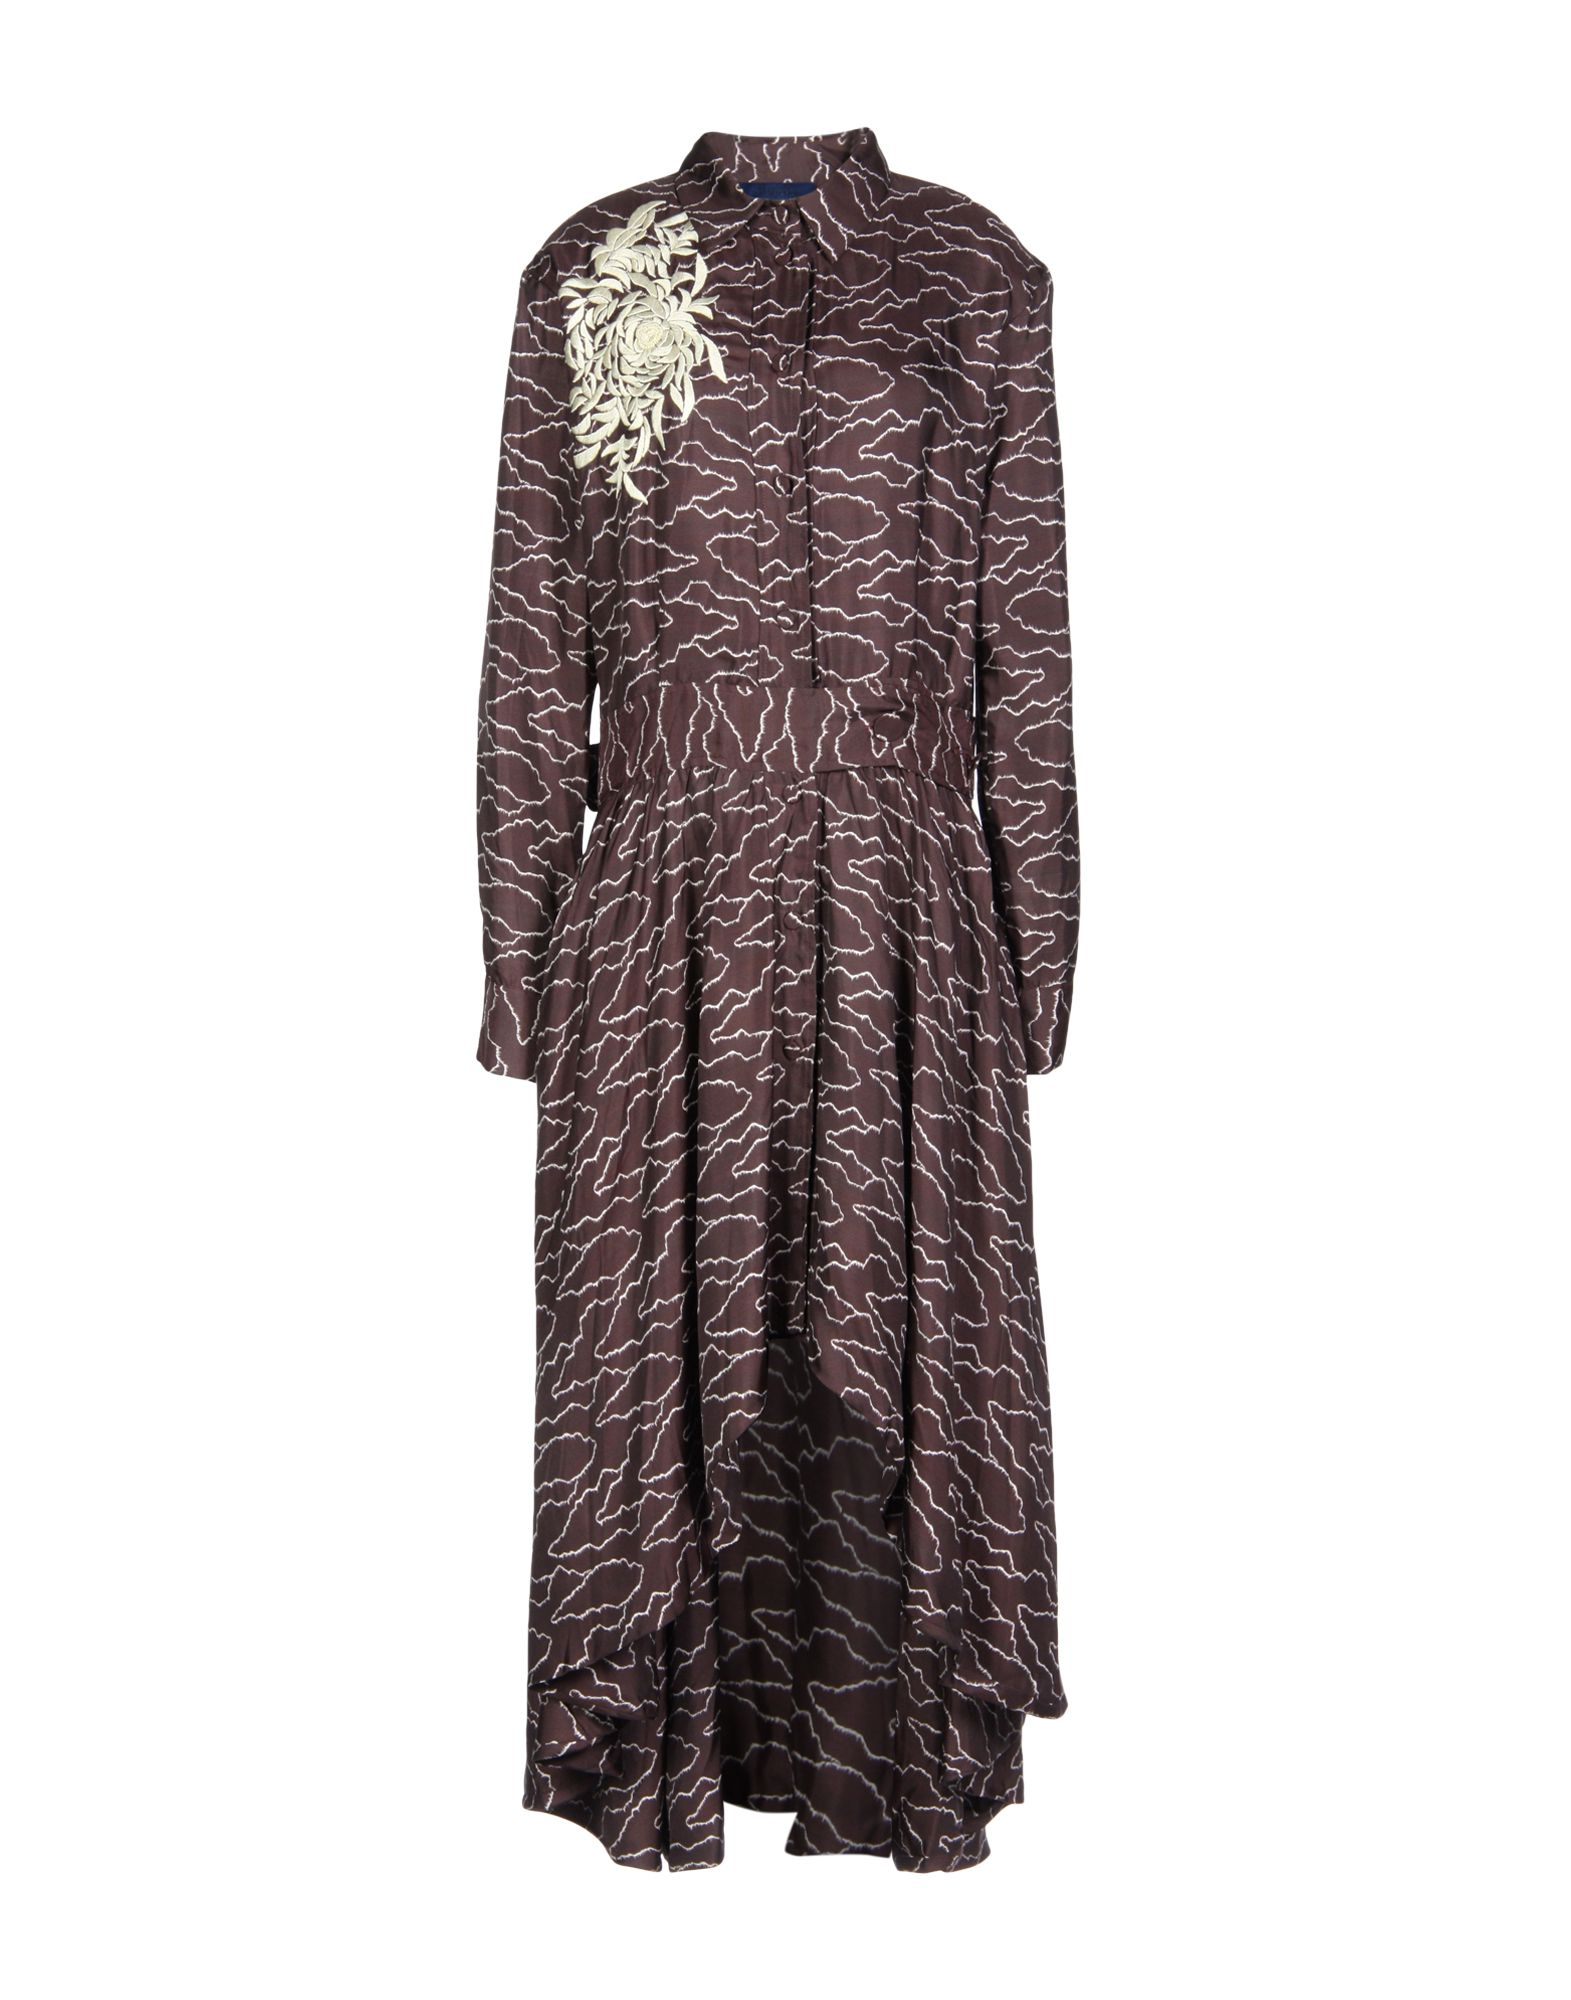 SHARON WAUCHOB Midi Dress in Deep Purple